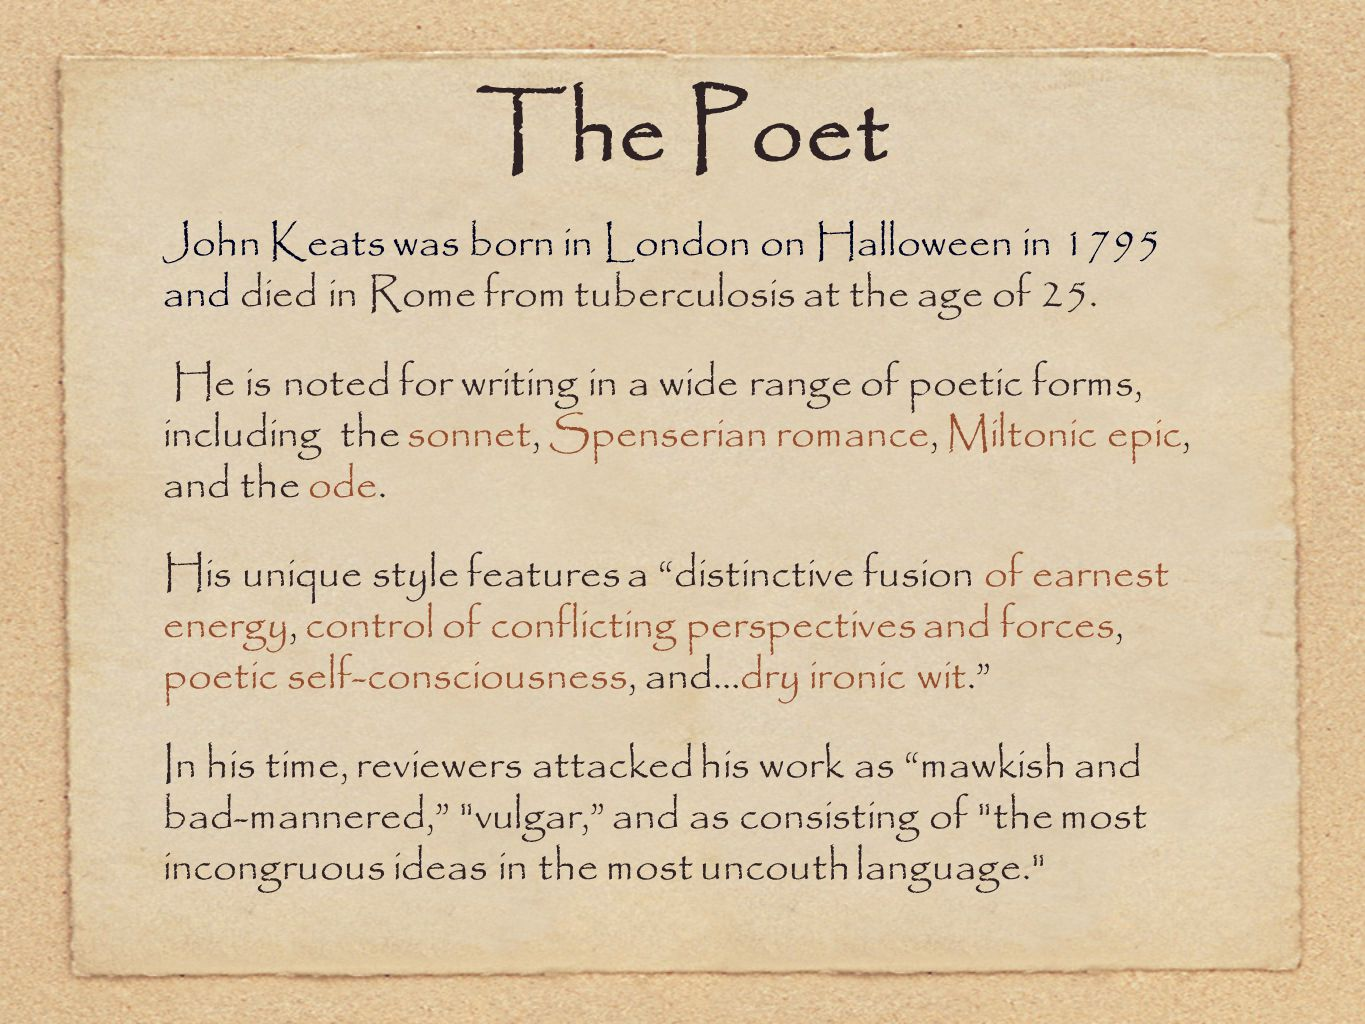 analysis of keats on first looking On first looking into chapman's homer by john keats: summary and analysis the theme of the poem is keats's amazement at the greatness, the range and the profundity of homer which he experienced through a translation of homer's epics by george chapman.